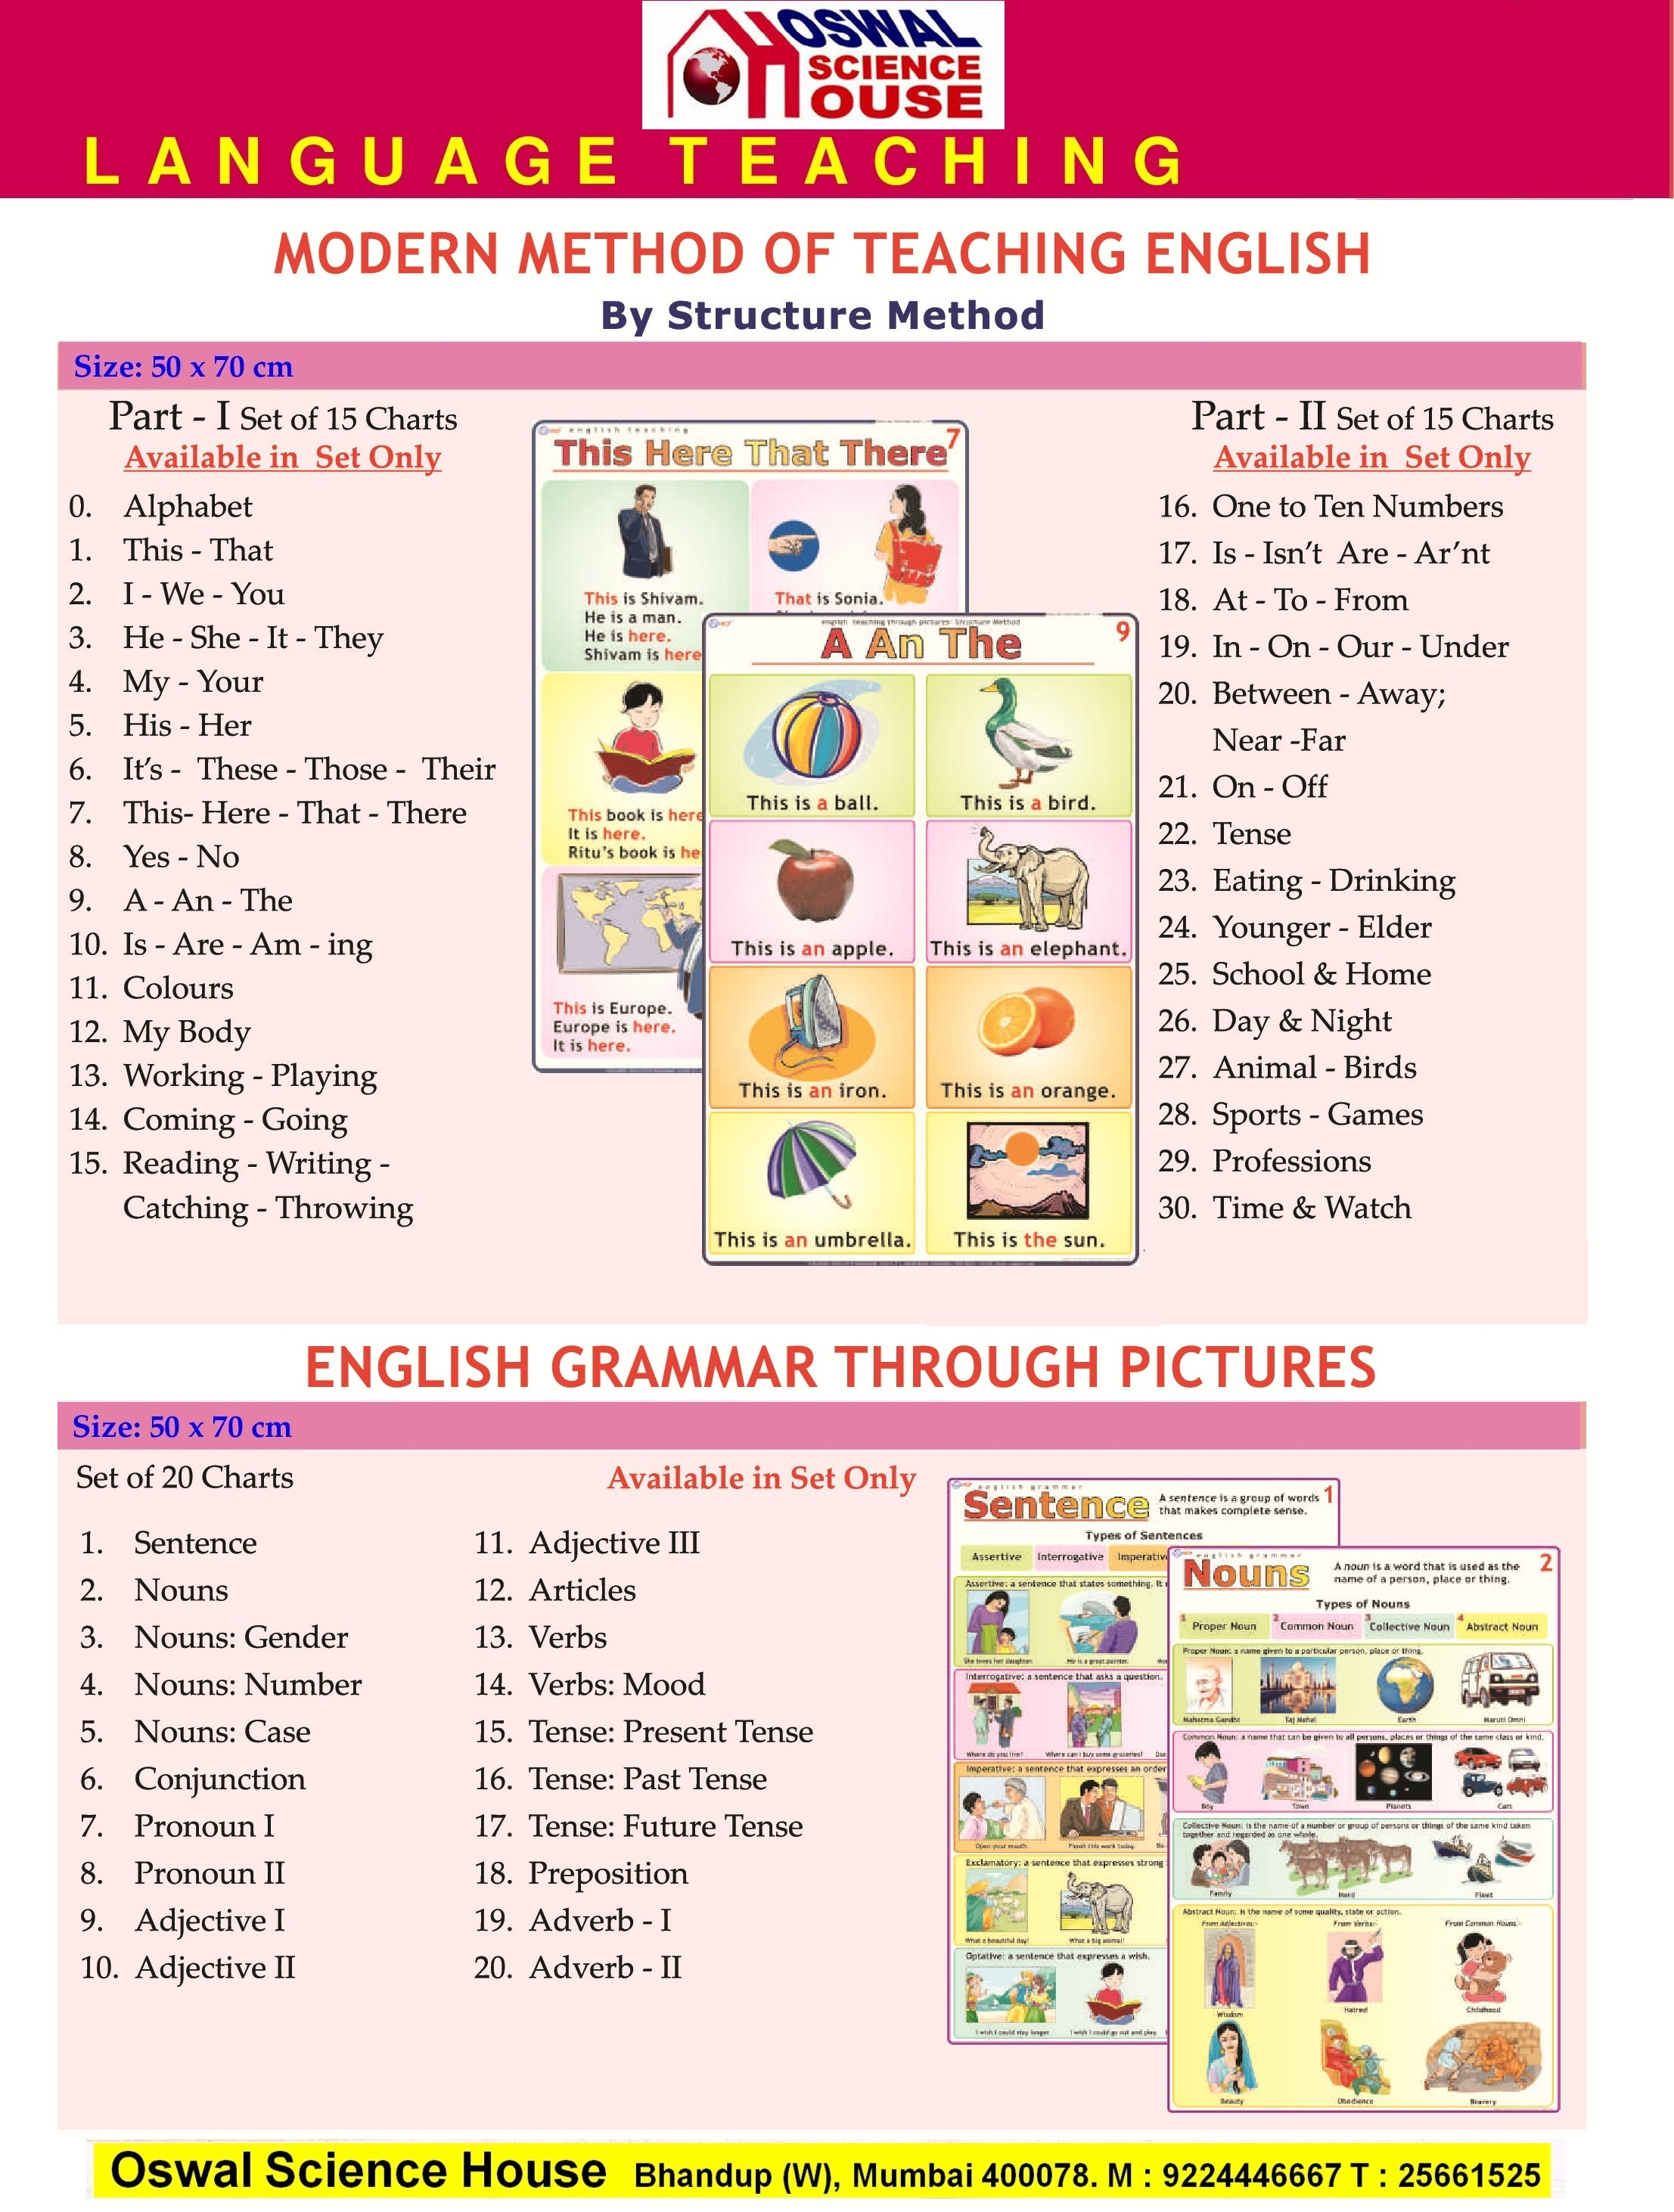 OSWAL SCIENCE HOUSE - Language Charts